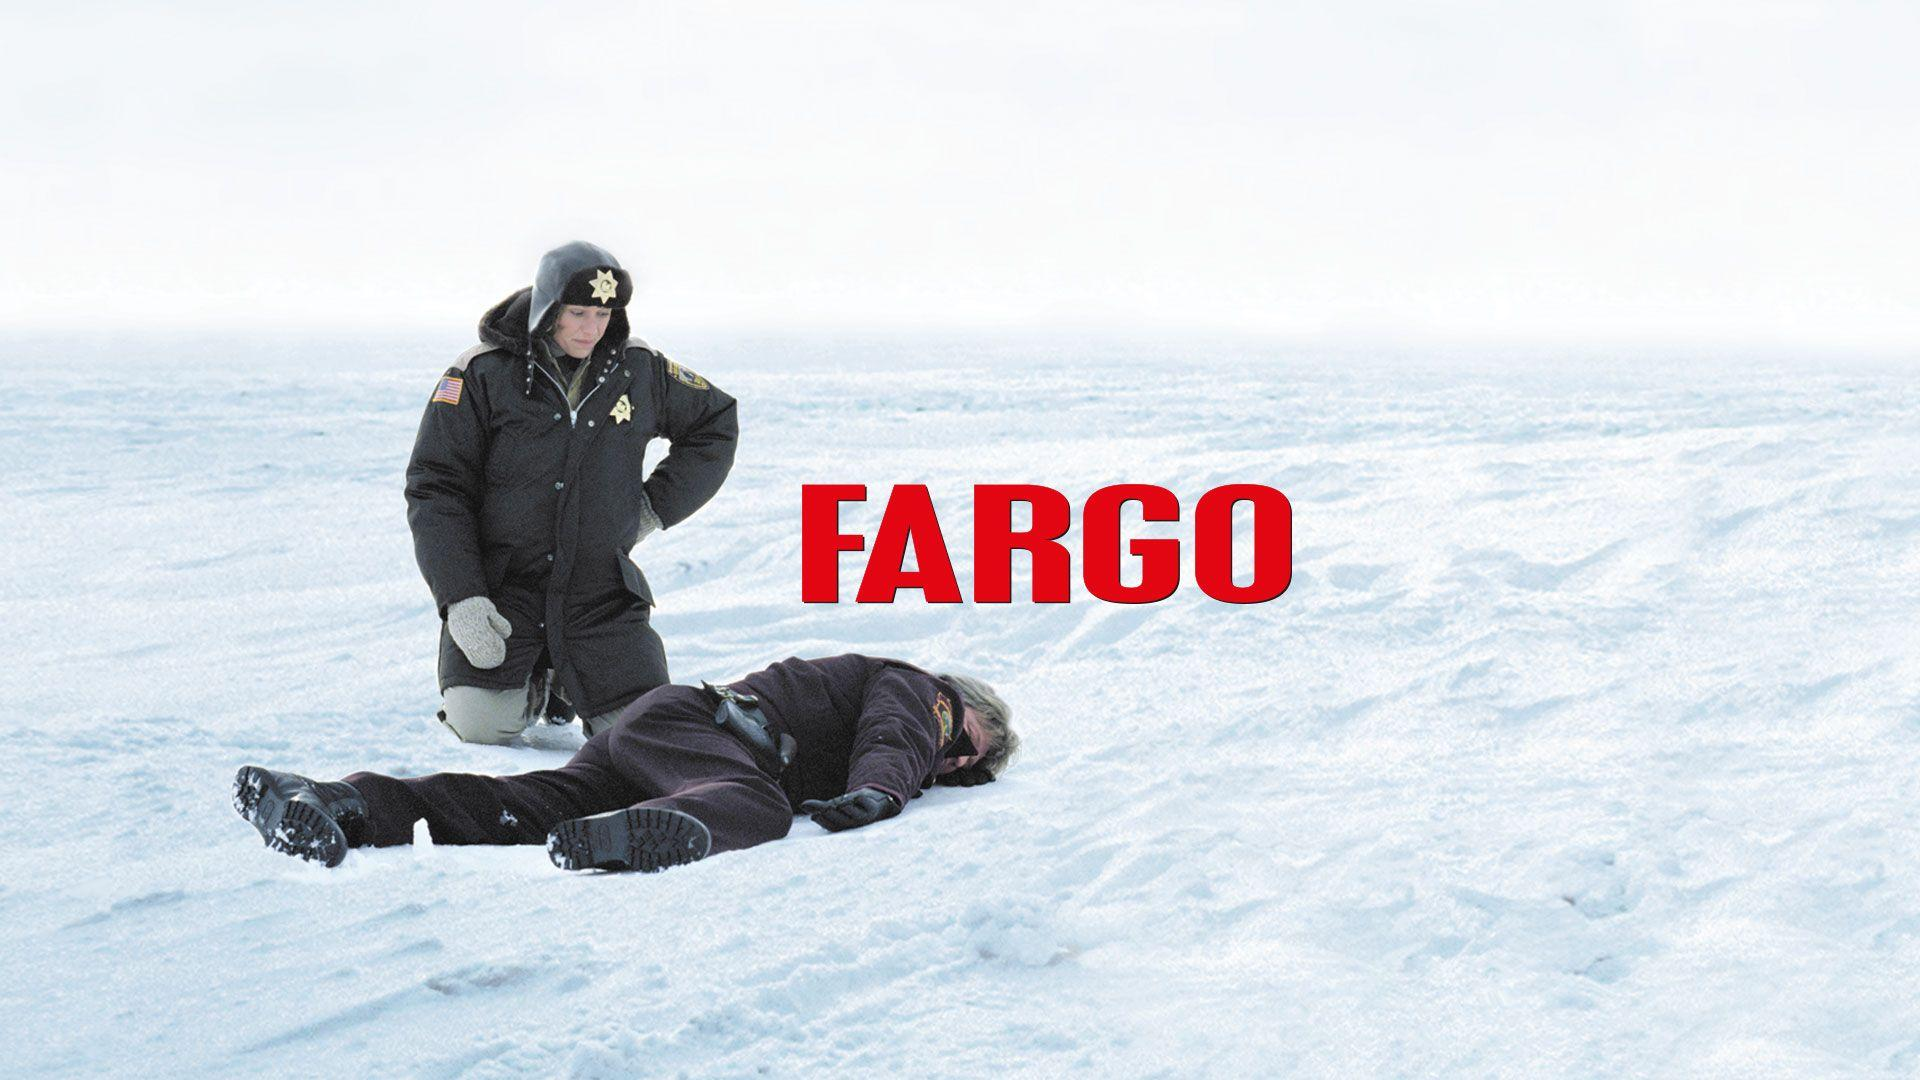 Tag: High Quality Fargo Wallpapers, Fargo Wallpapers, Backgrounds ...